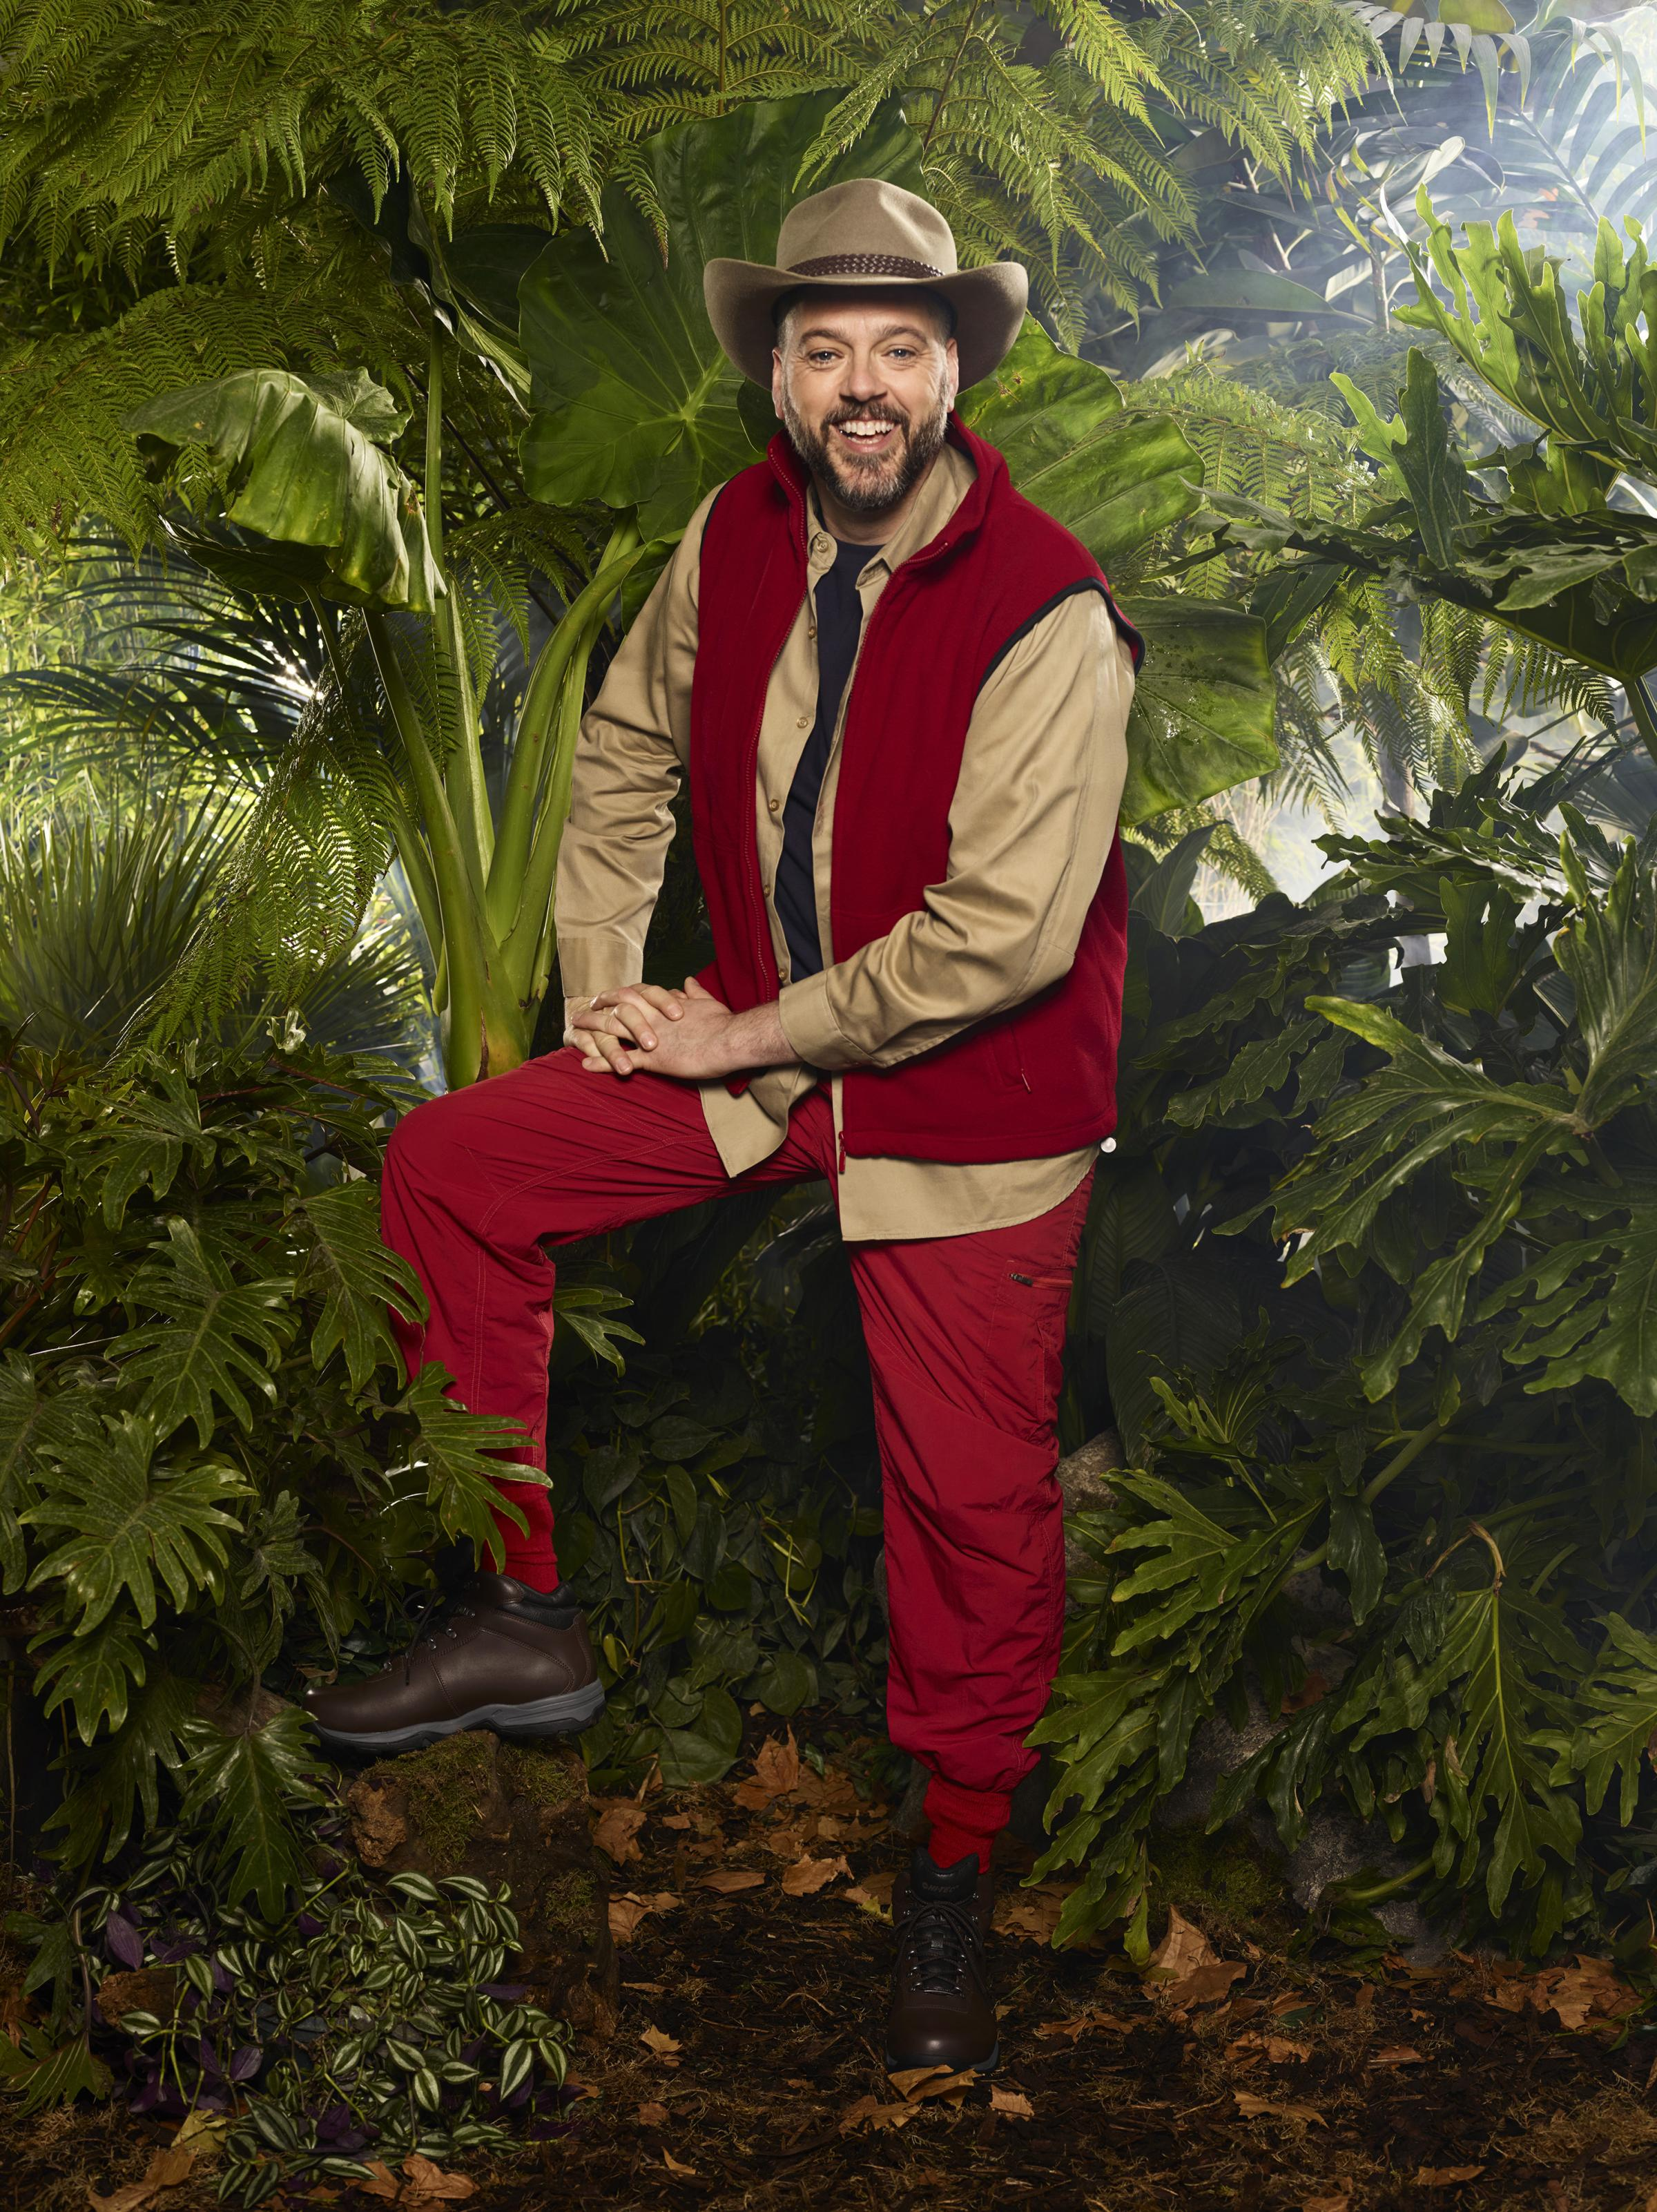 Iain Lee is in I'm a Celebrity this year, photograph: Copyright ITV Plc